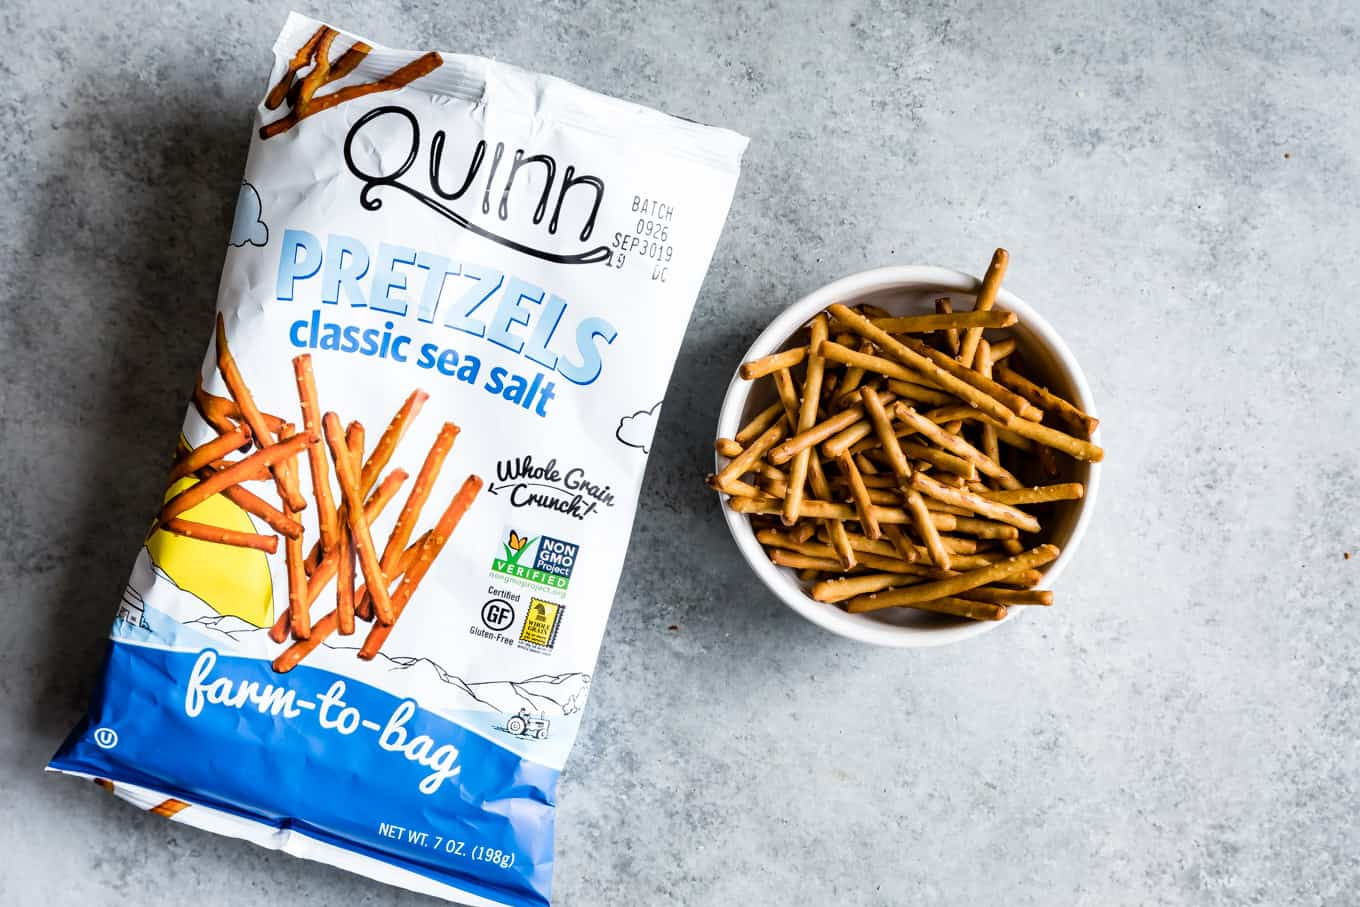 The Best Gluten-Free Pretzels